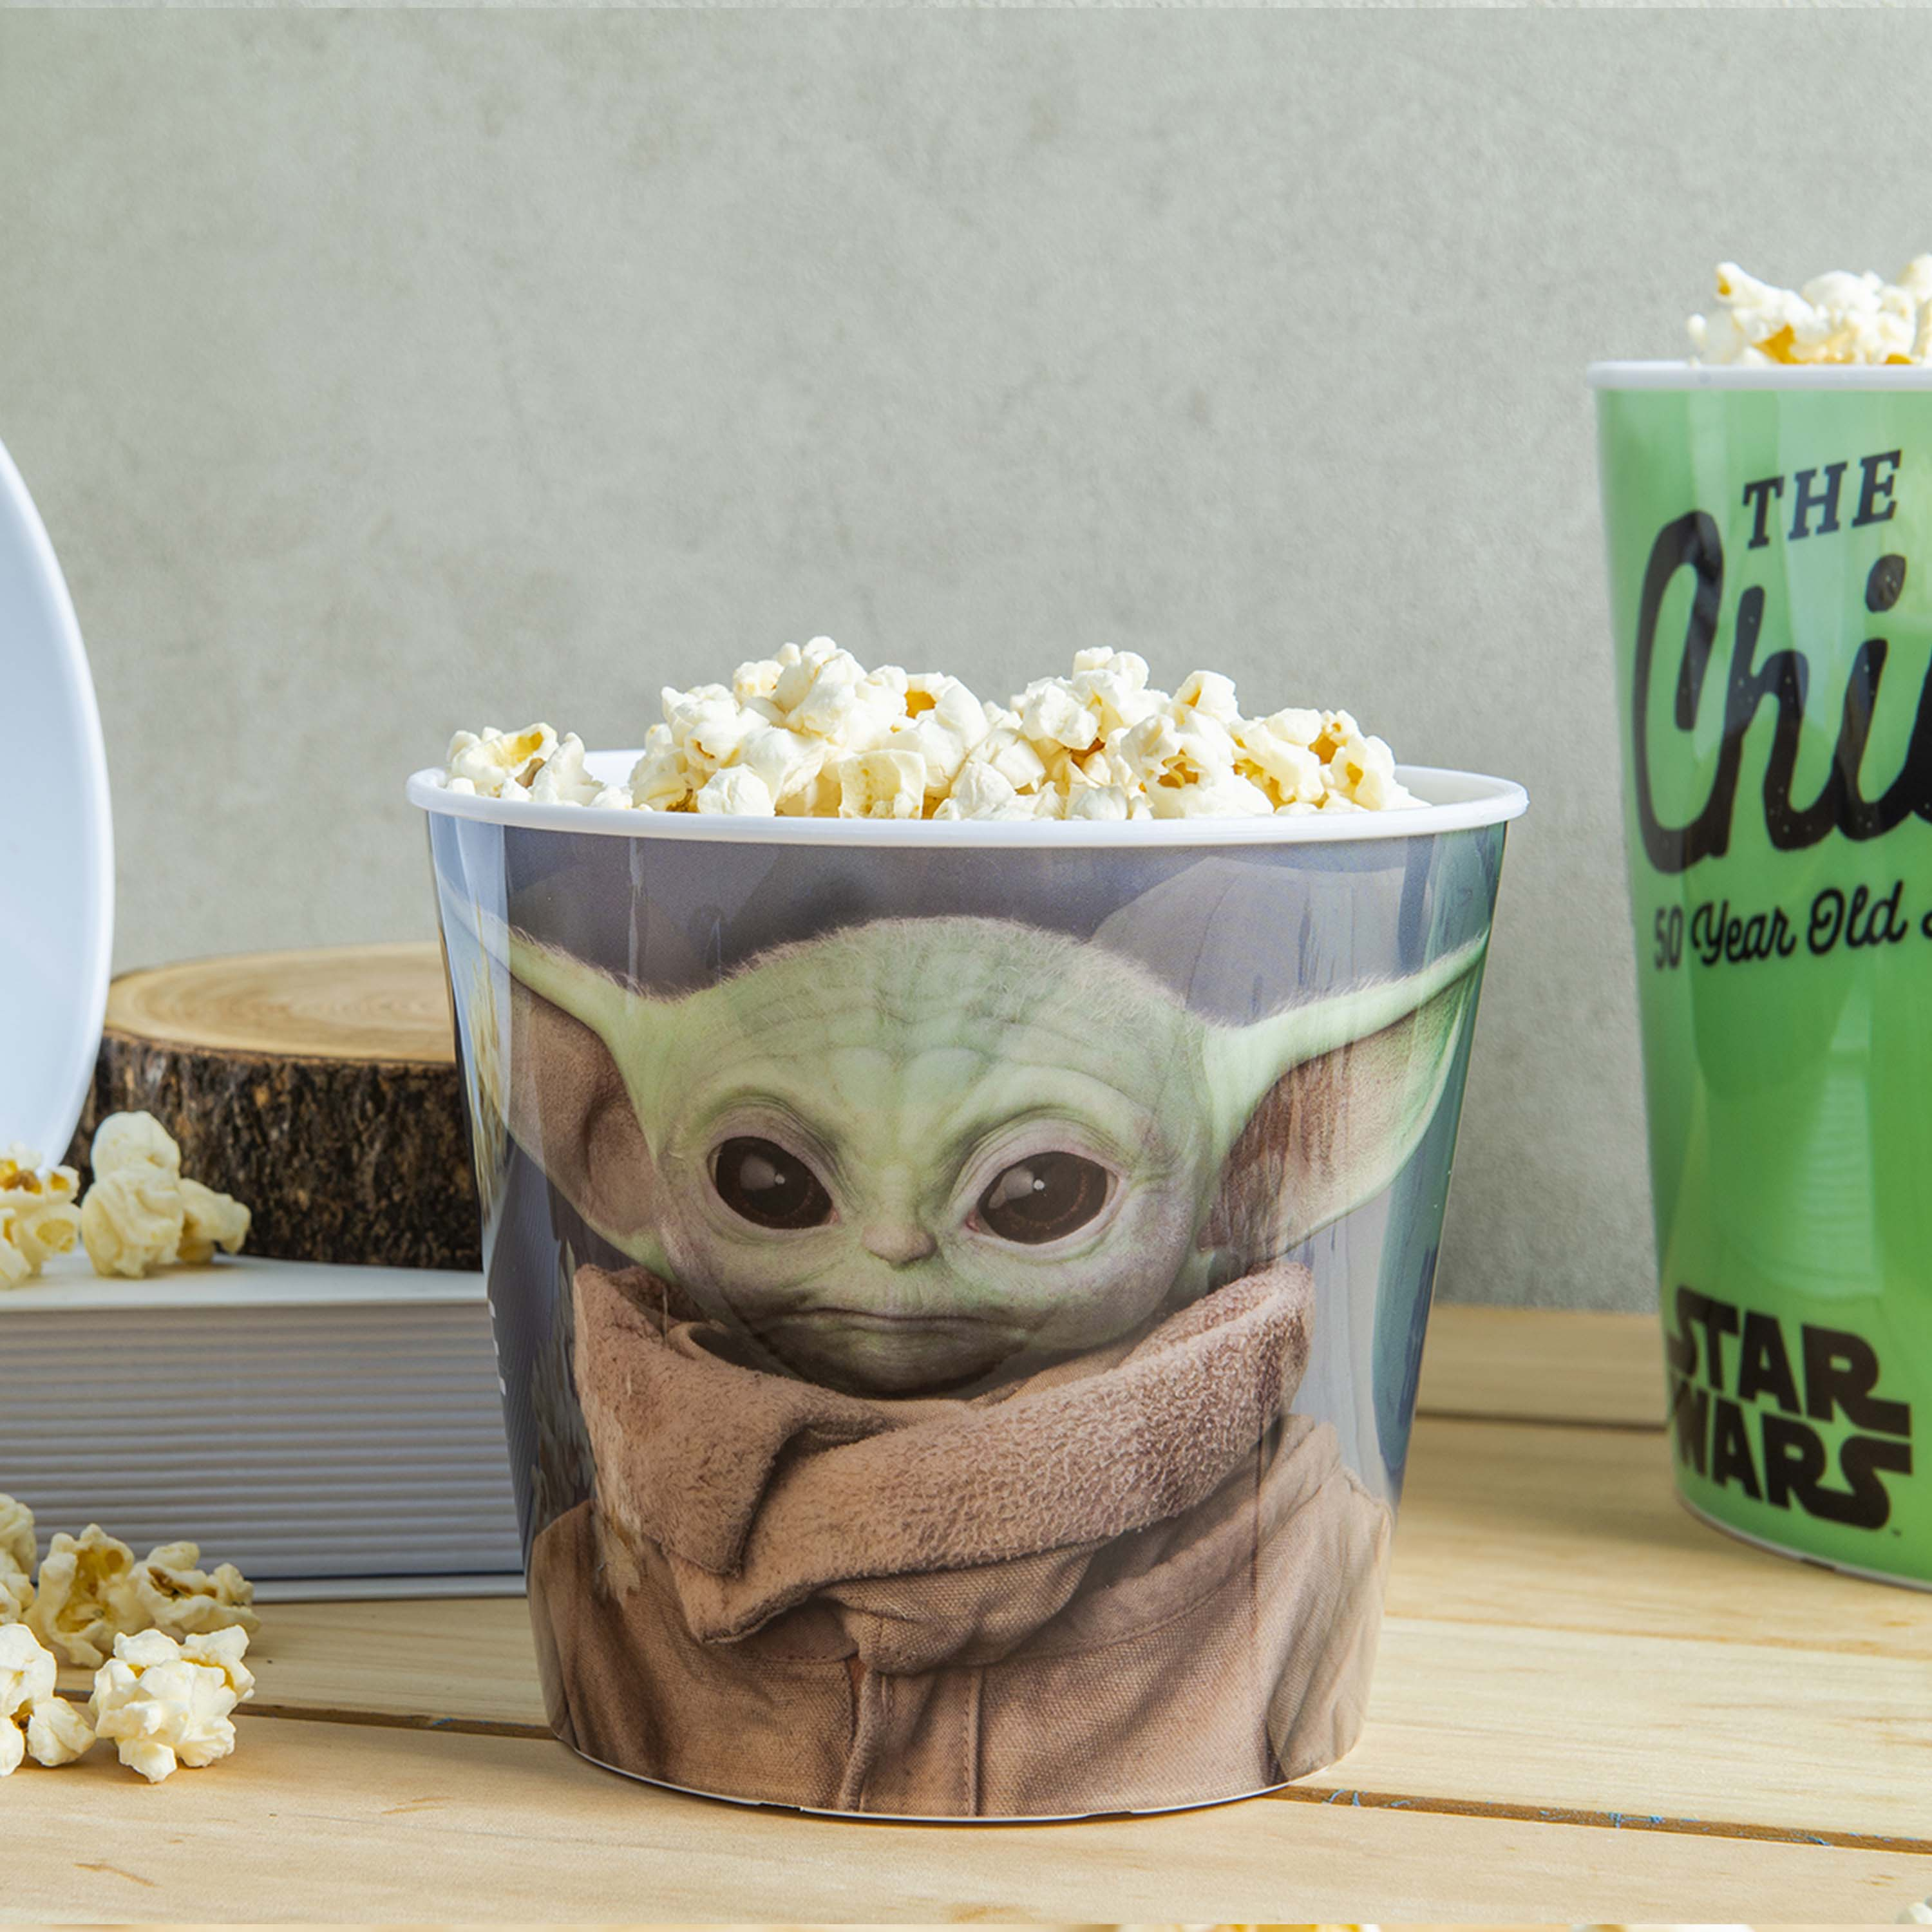 Star Wars: The Mandalorian Plastic Popcorn Container and Bowls, The Child (Baby Yoda), 5-piece set slideshow image 2